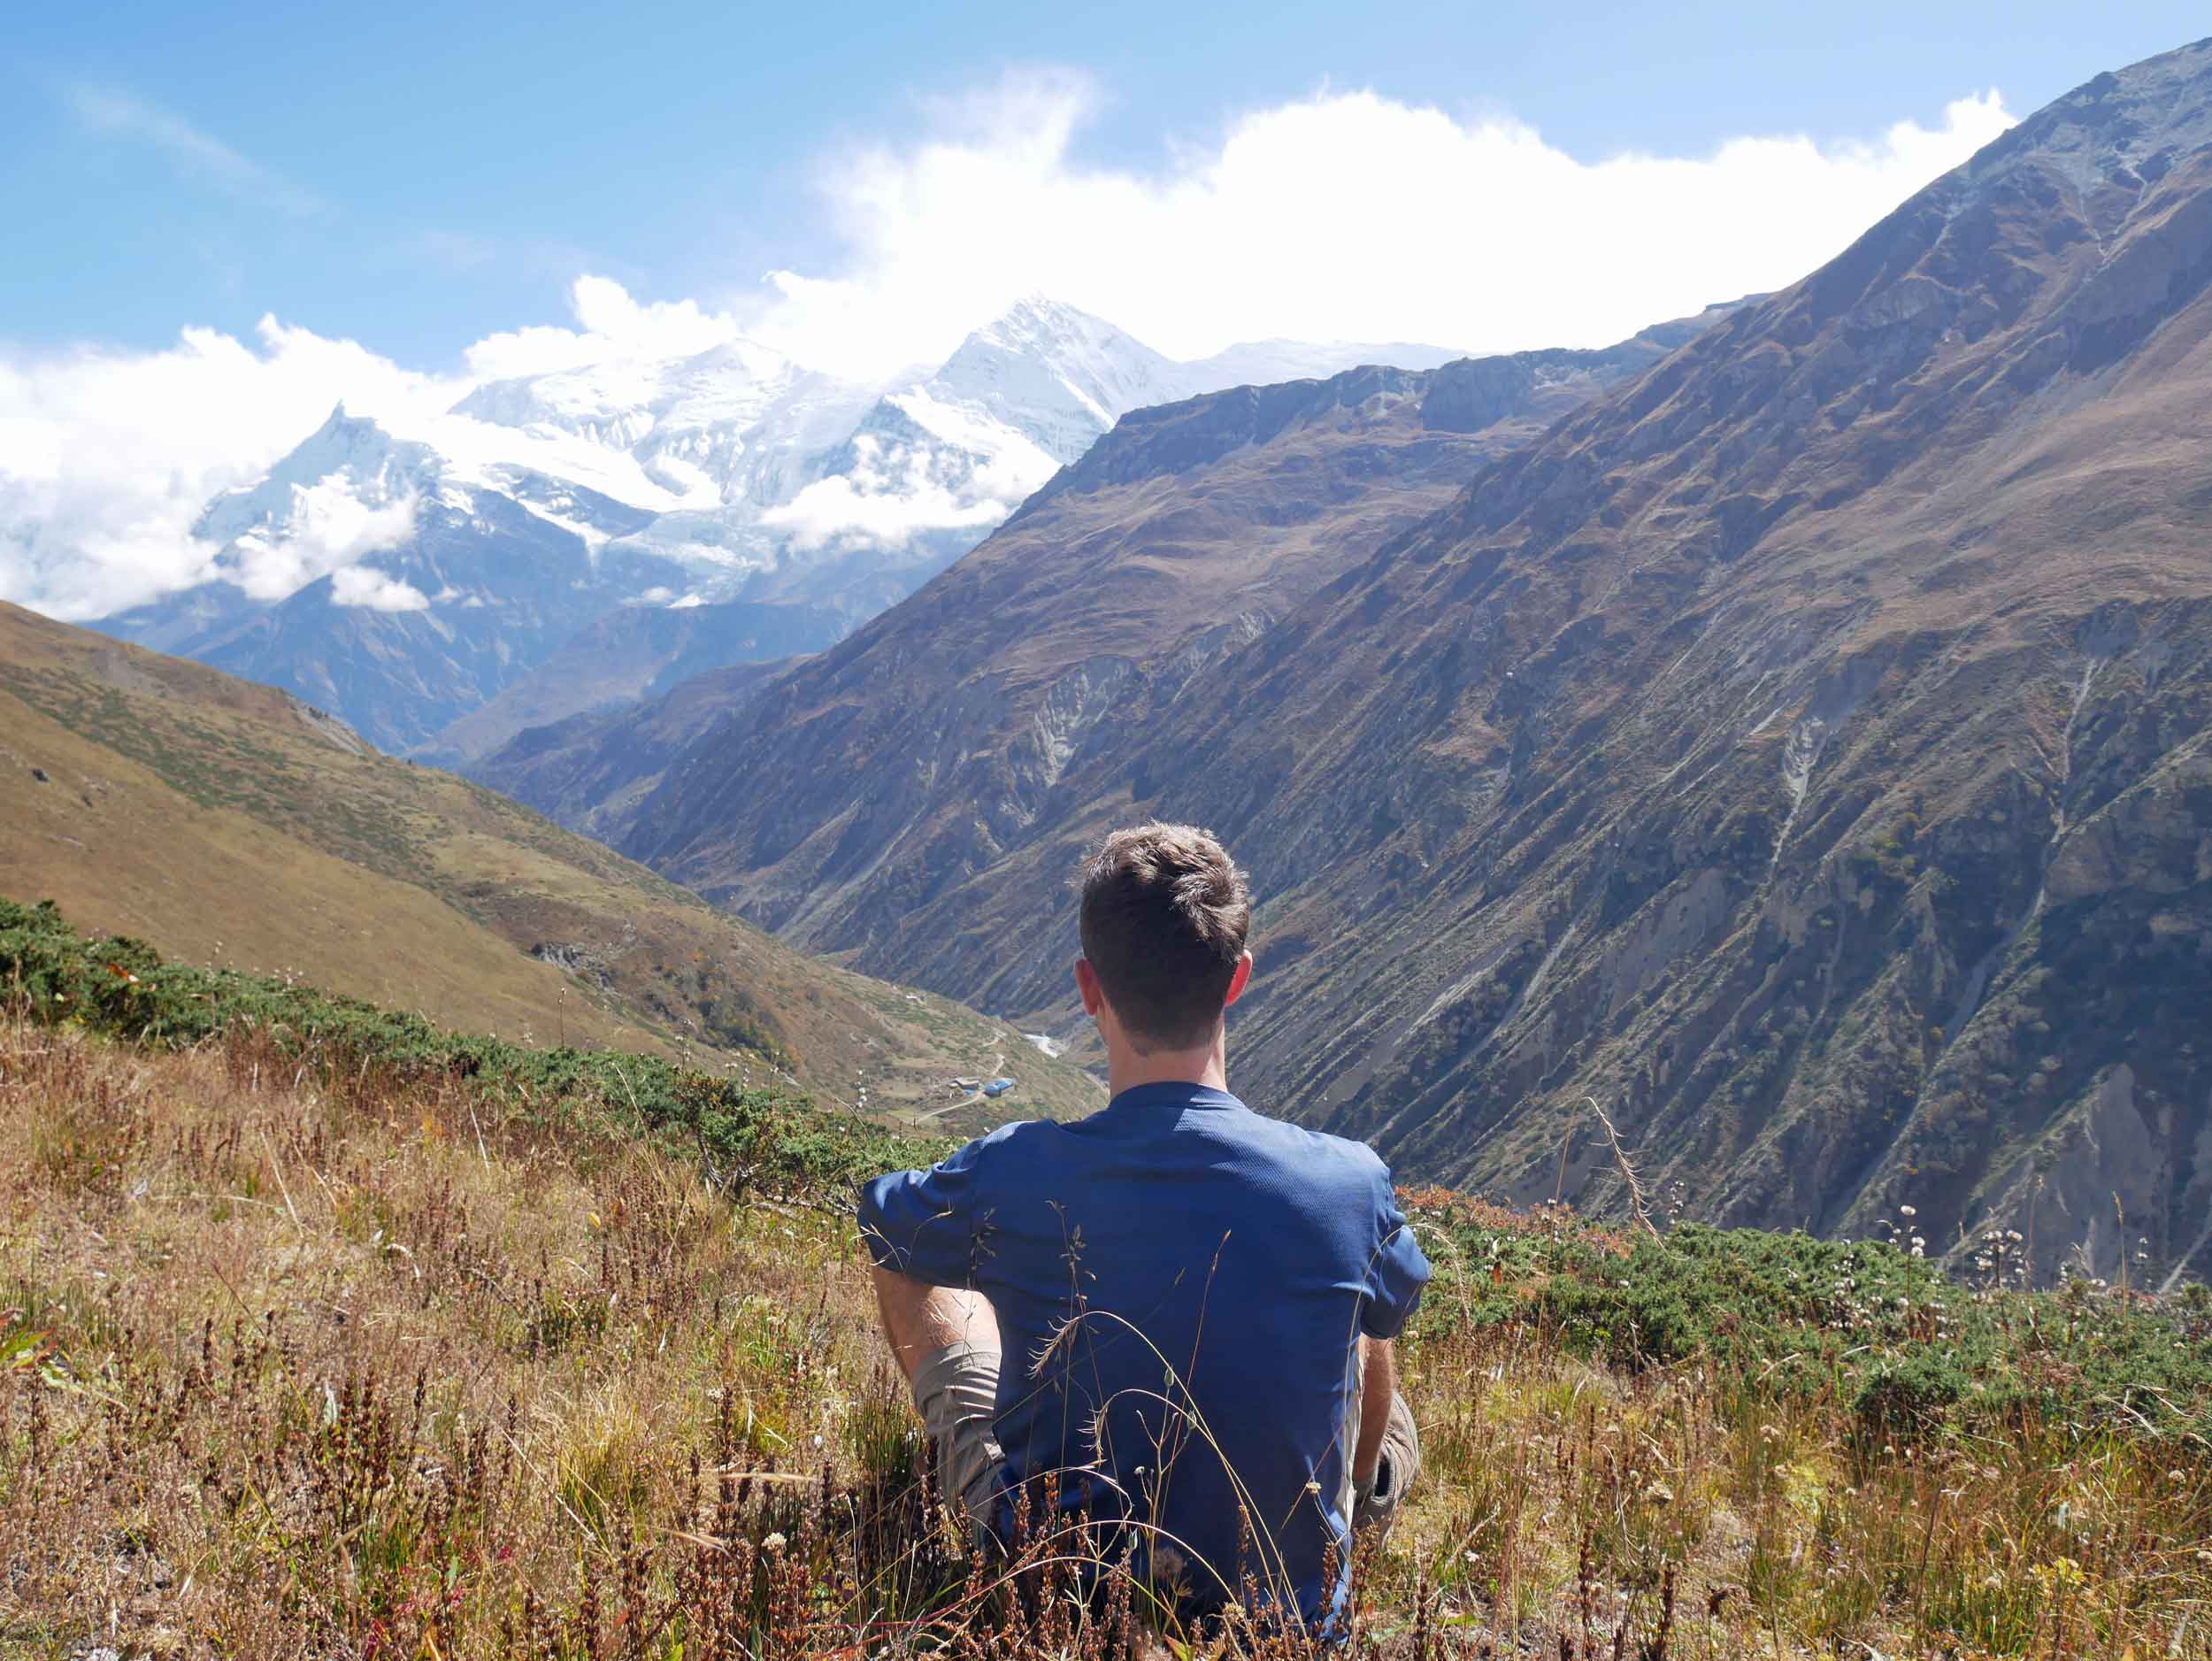 Martin taking a moment to appreciate the beauty of the range above Yak Kharka -and a hike without the pack!